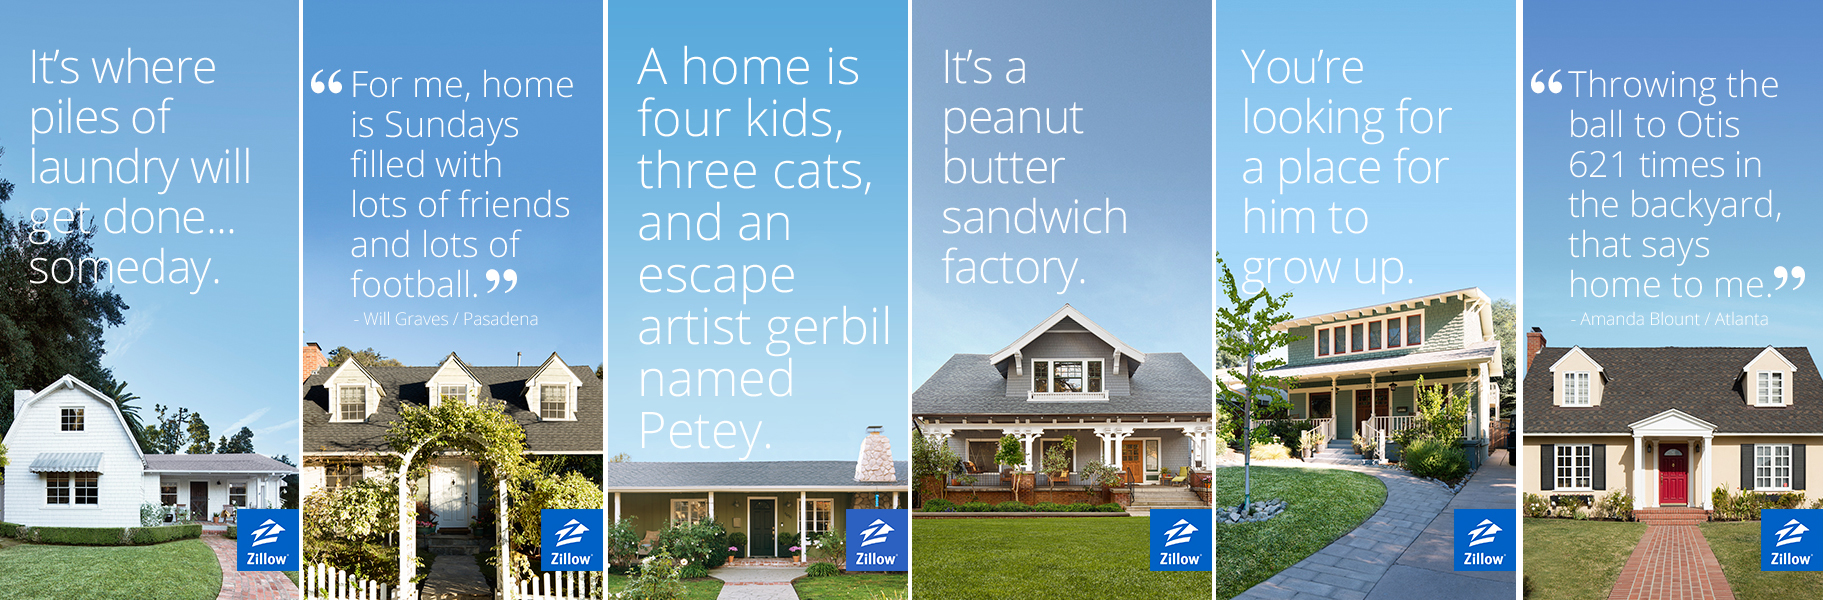 zillow_banners